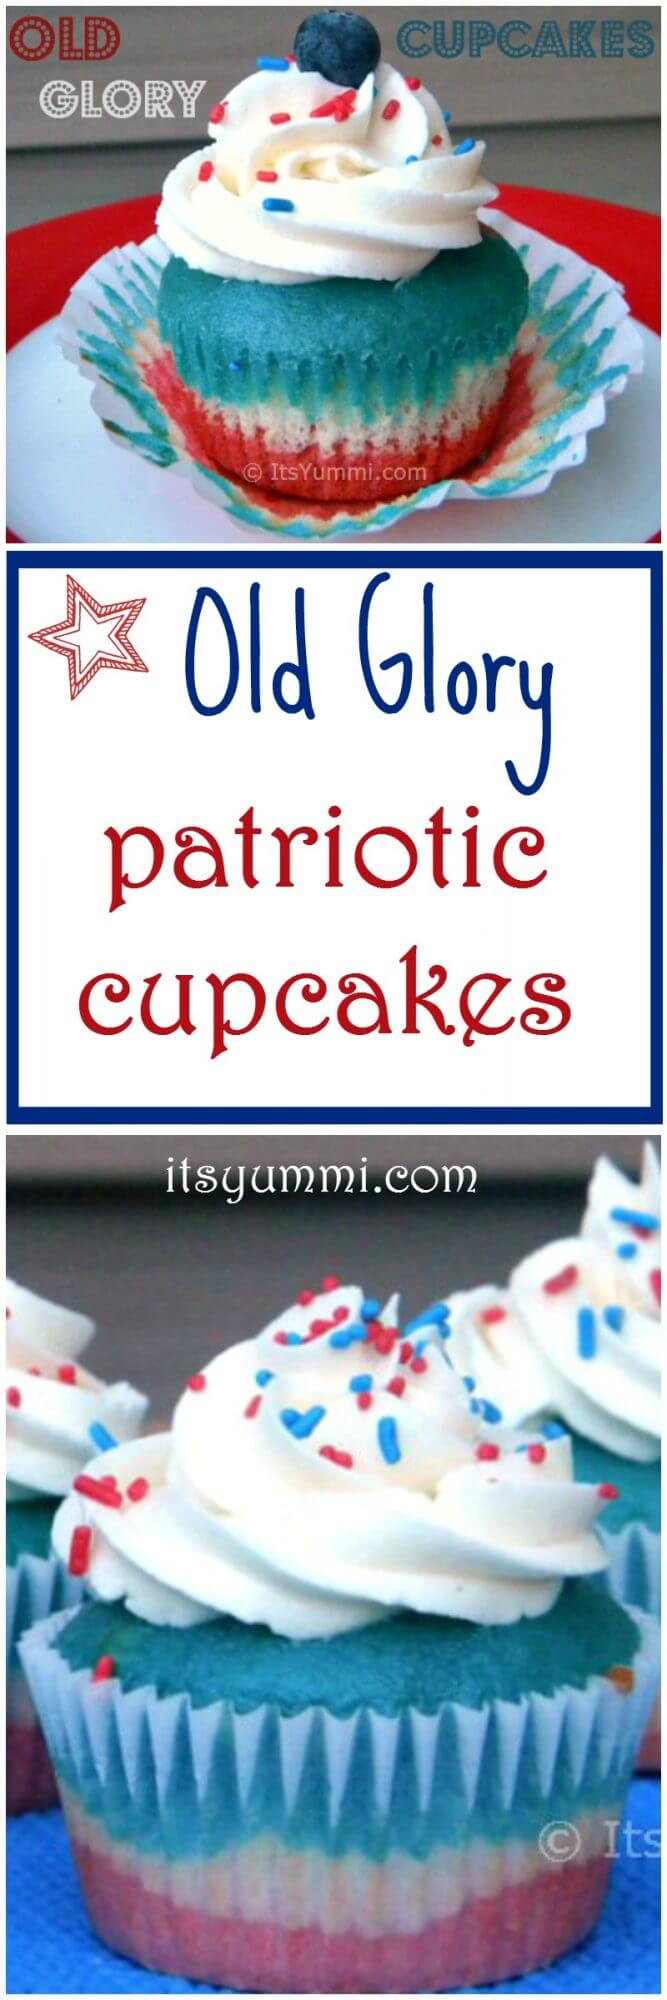 Old Glory Patriotic Cupcakes are the perfect snack or dessert for Memorial Day or the 4th of July. Learn how to make them from @itsyummi (itsyummi.com)